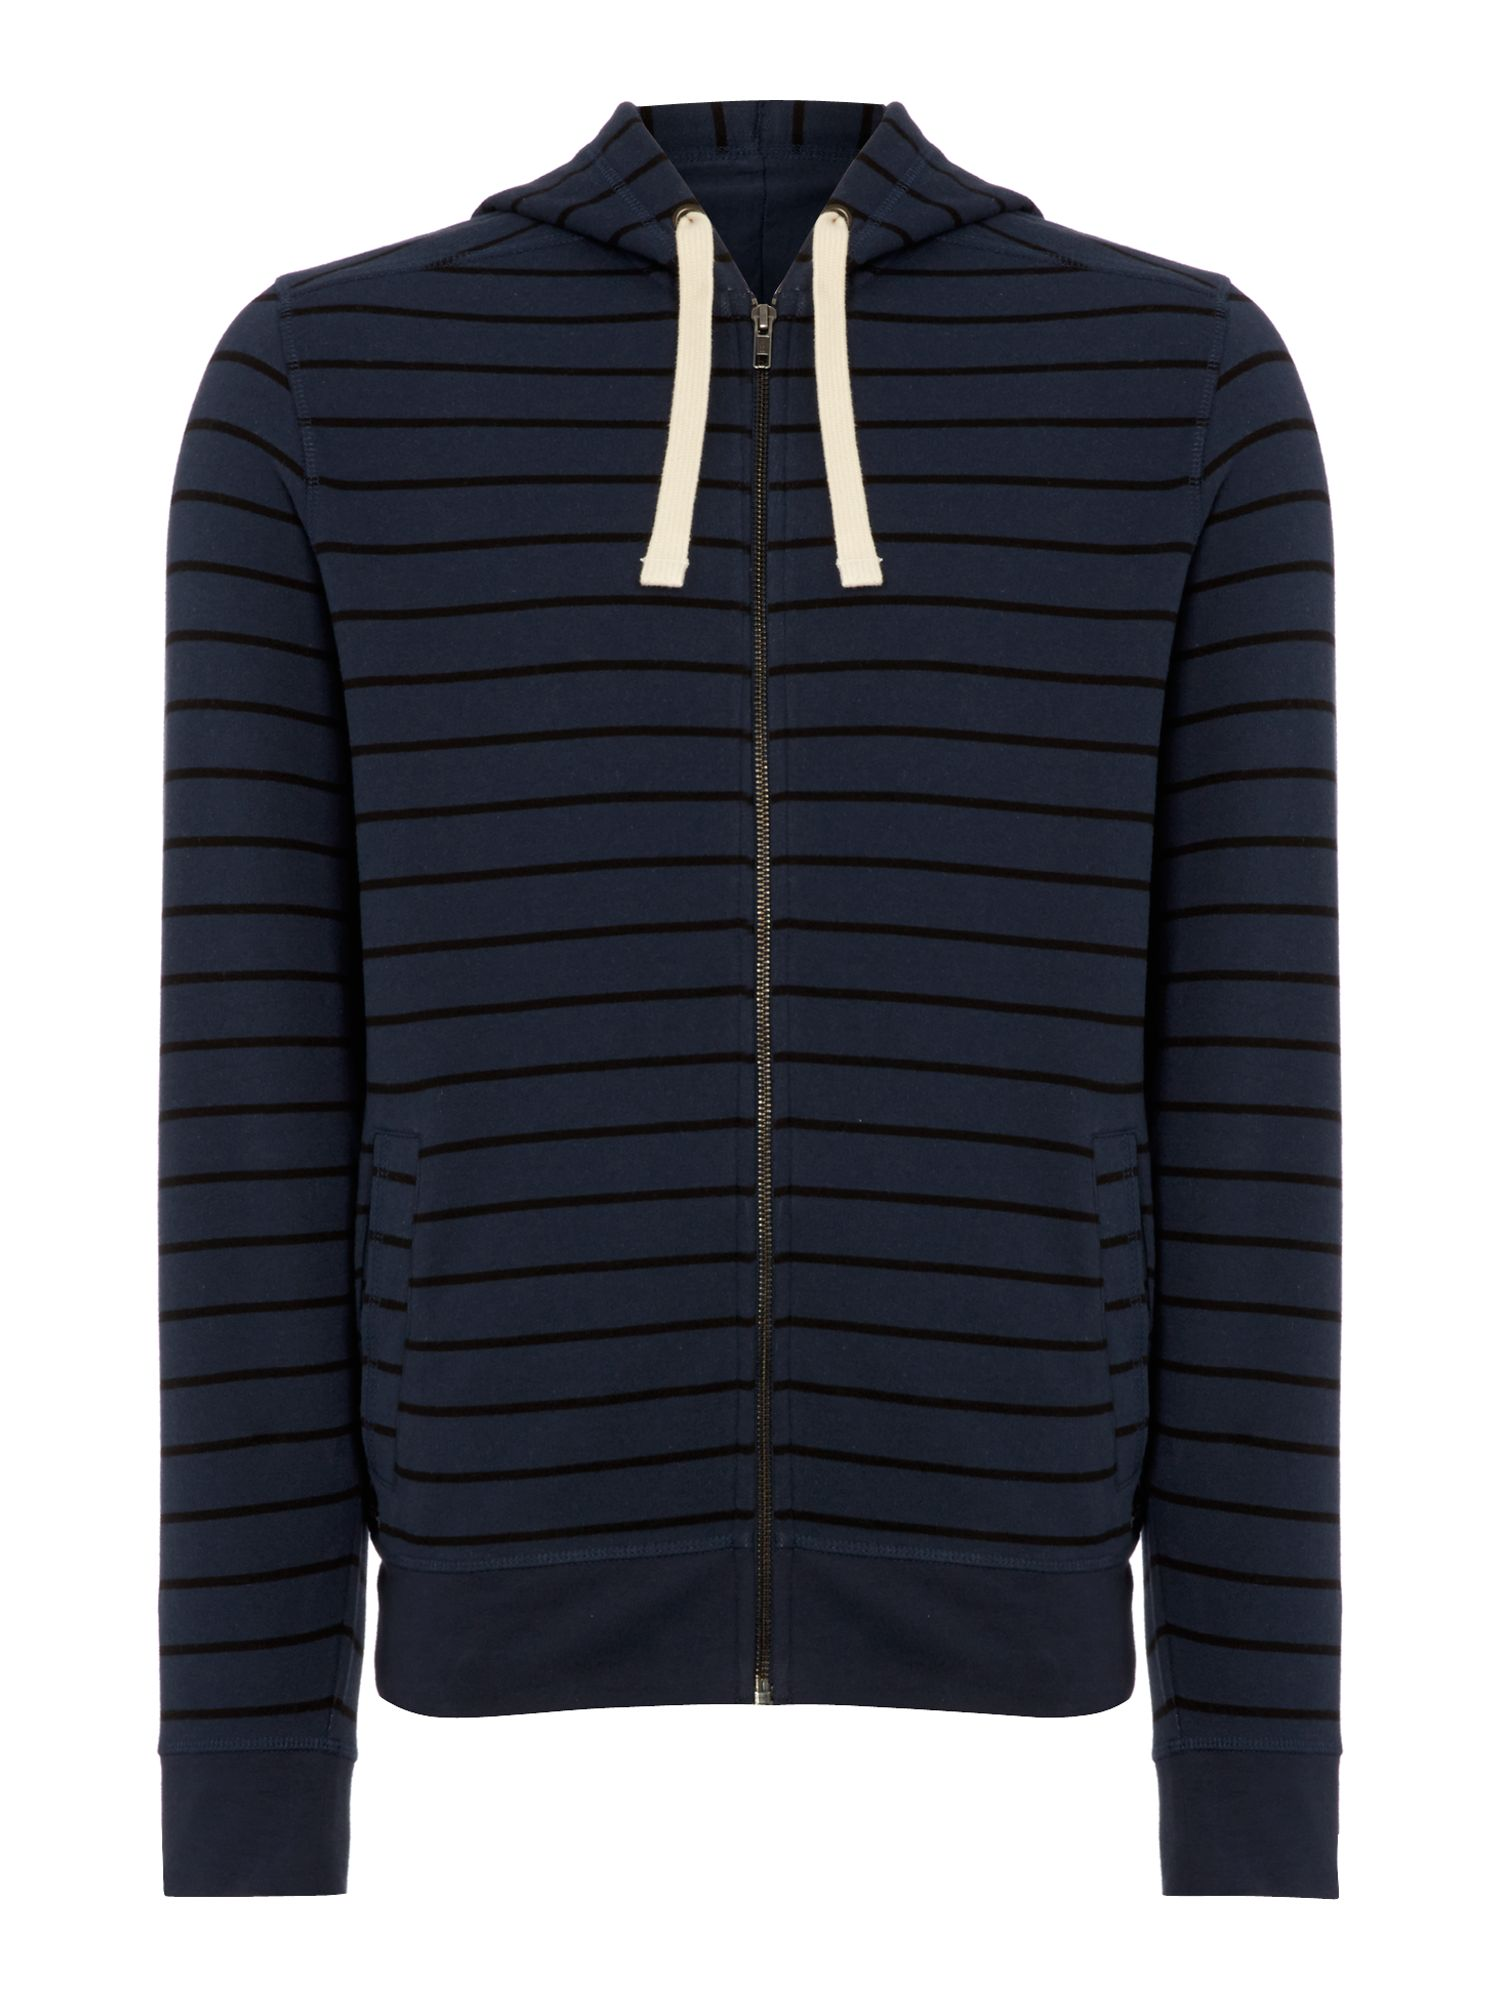 Manhatten Striped Hoody